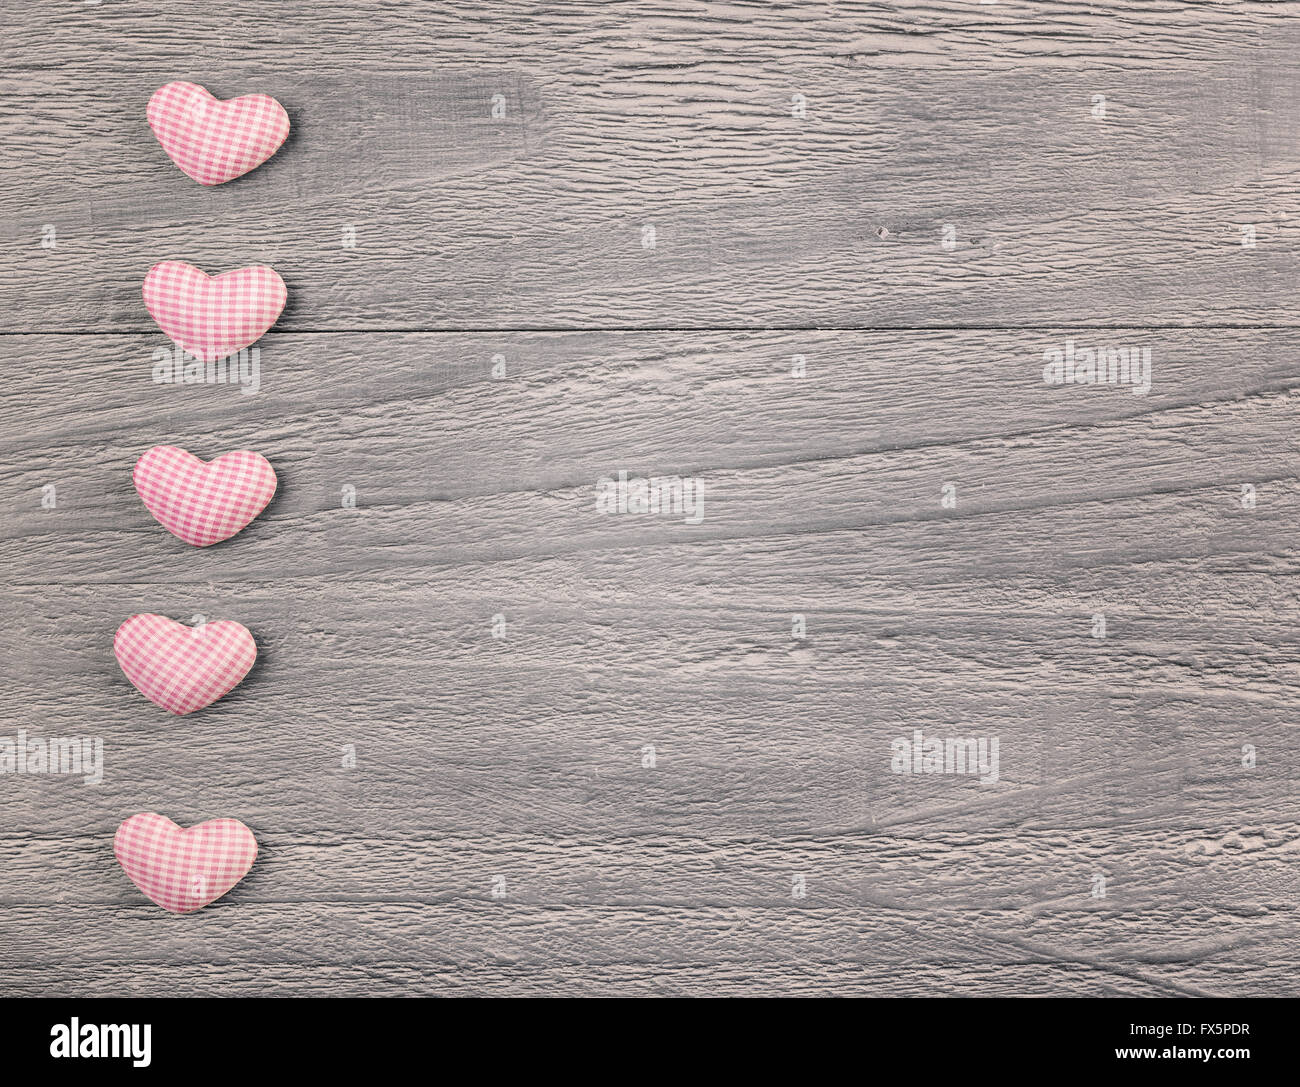 wooden background with gingham hearts toning in vintage style - Stock Image